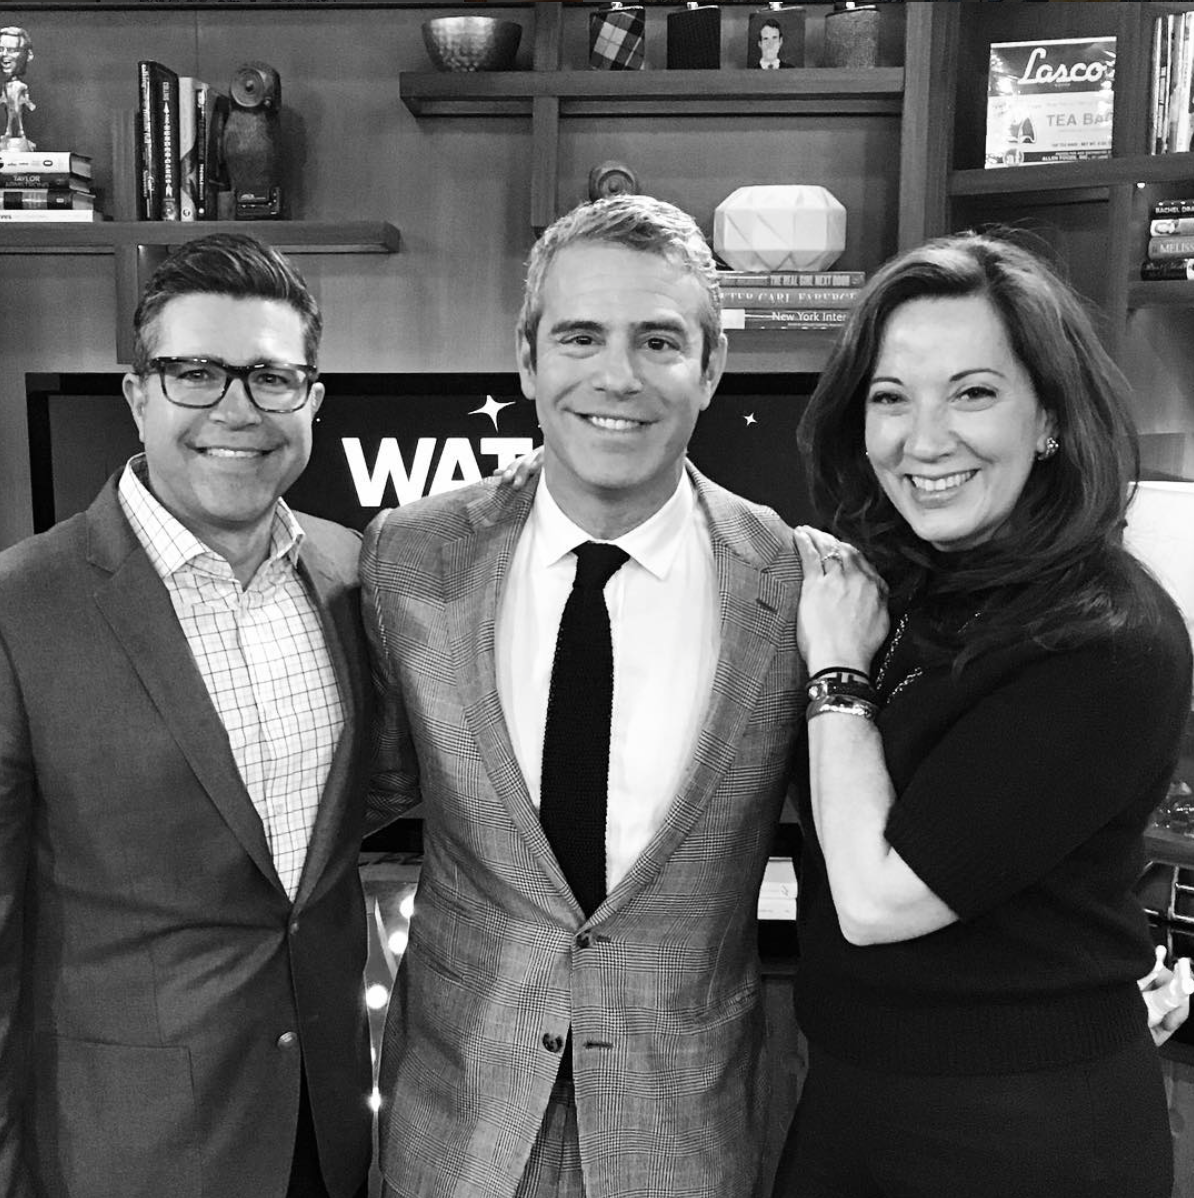 Meeting Andy Cohen at the Watch What Happens Live studio in NYC with Doug - Could I look any more excited?!